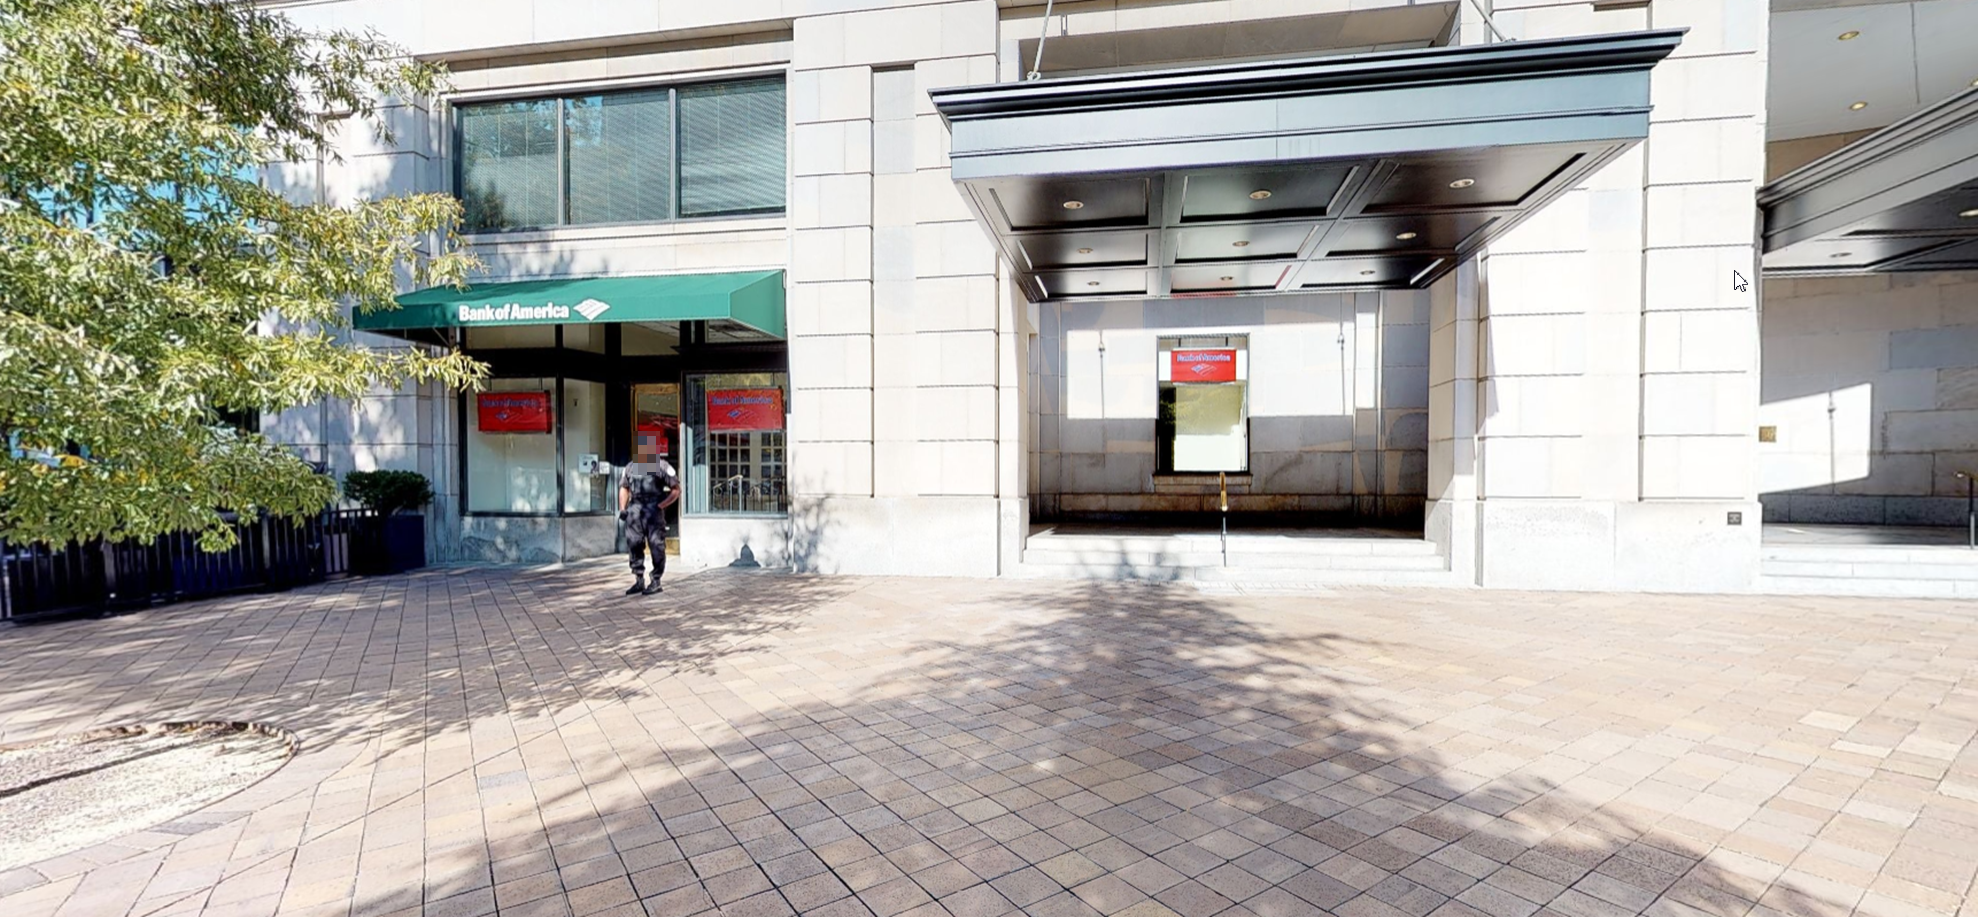 Bank of America financial center with walk-up ATM | 1001 Pennsylvania Ave NW, Washington, DC 20004